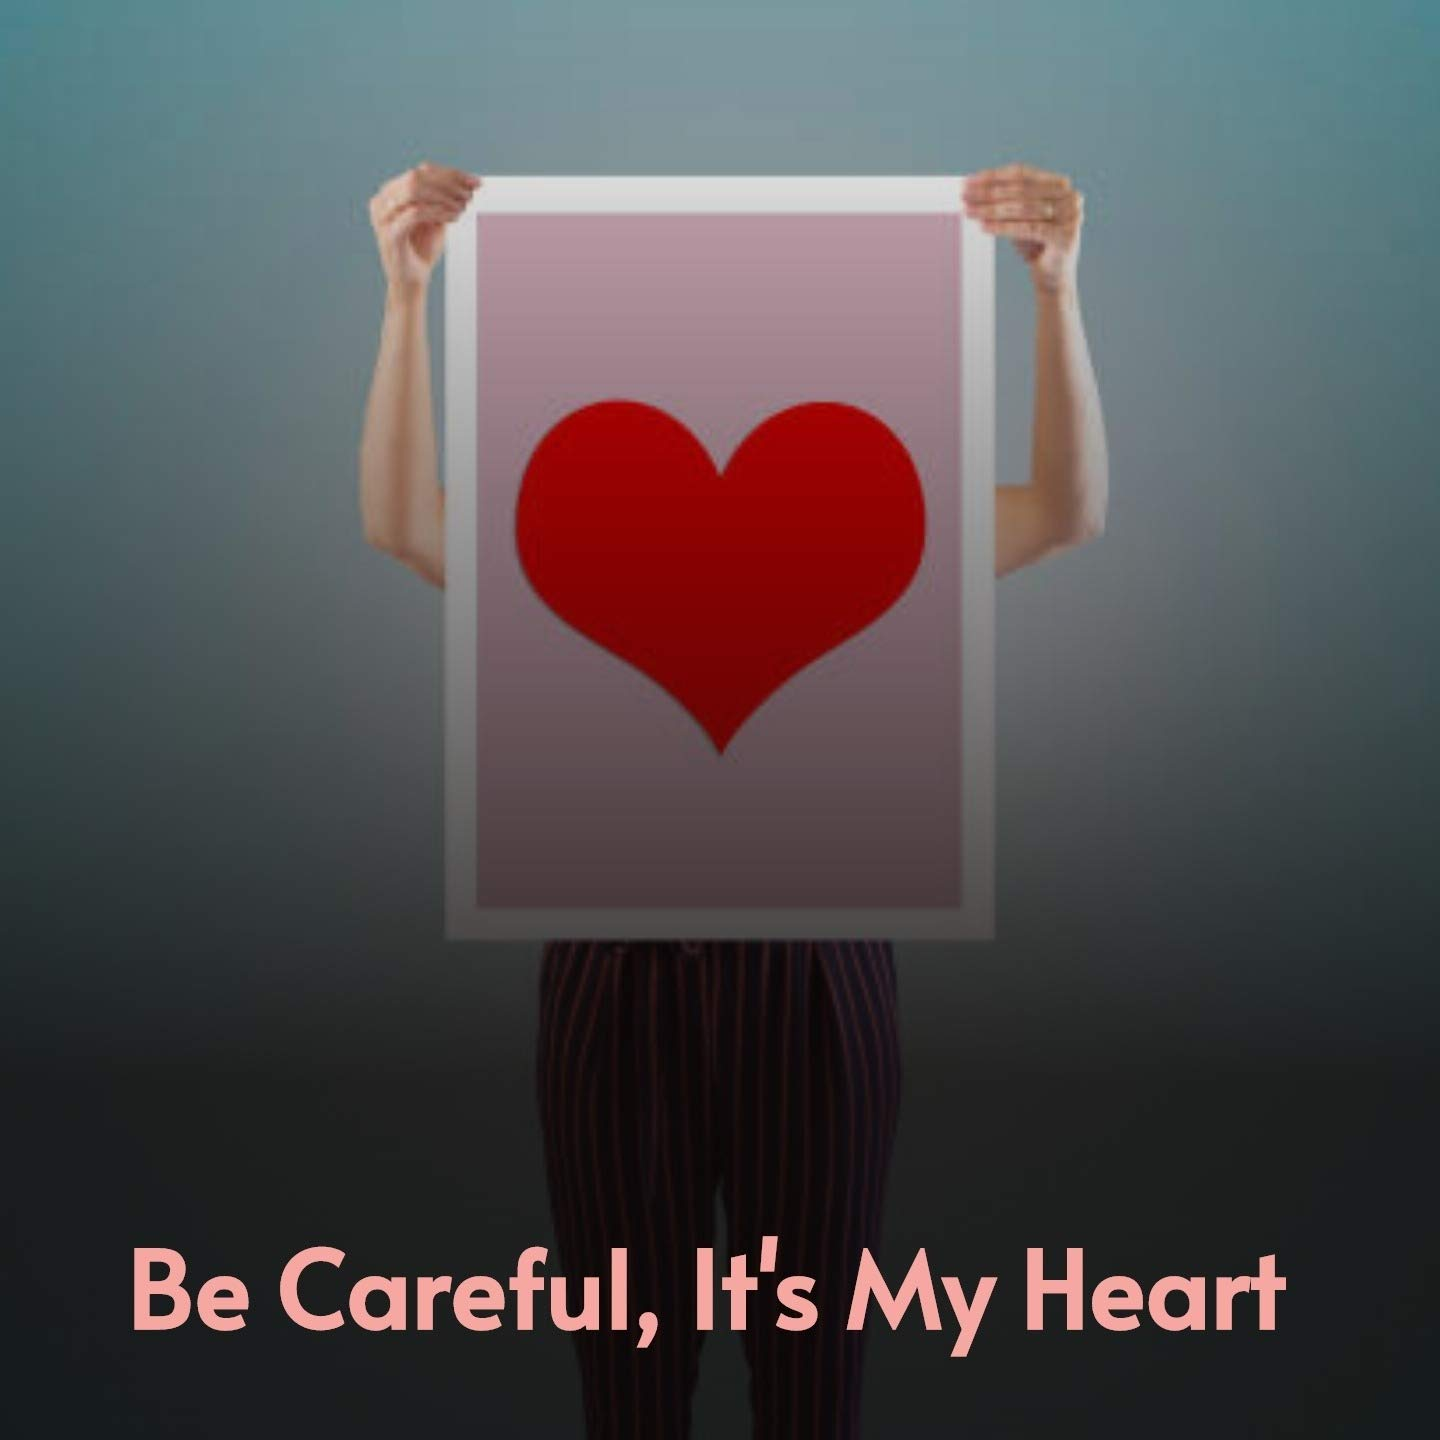 Song lyrics to Be Careful, It's My Heart (1942), Music and Lyrics by Irving Berlin. Sung by Bing Crosby at the Holiday Inn on Valentine's Day